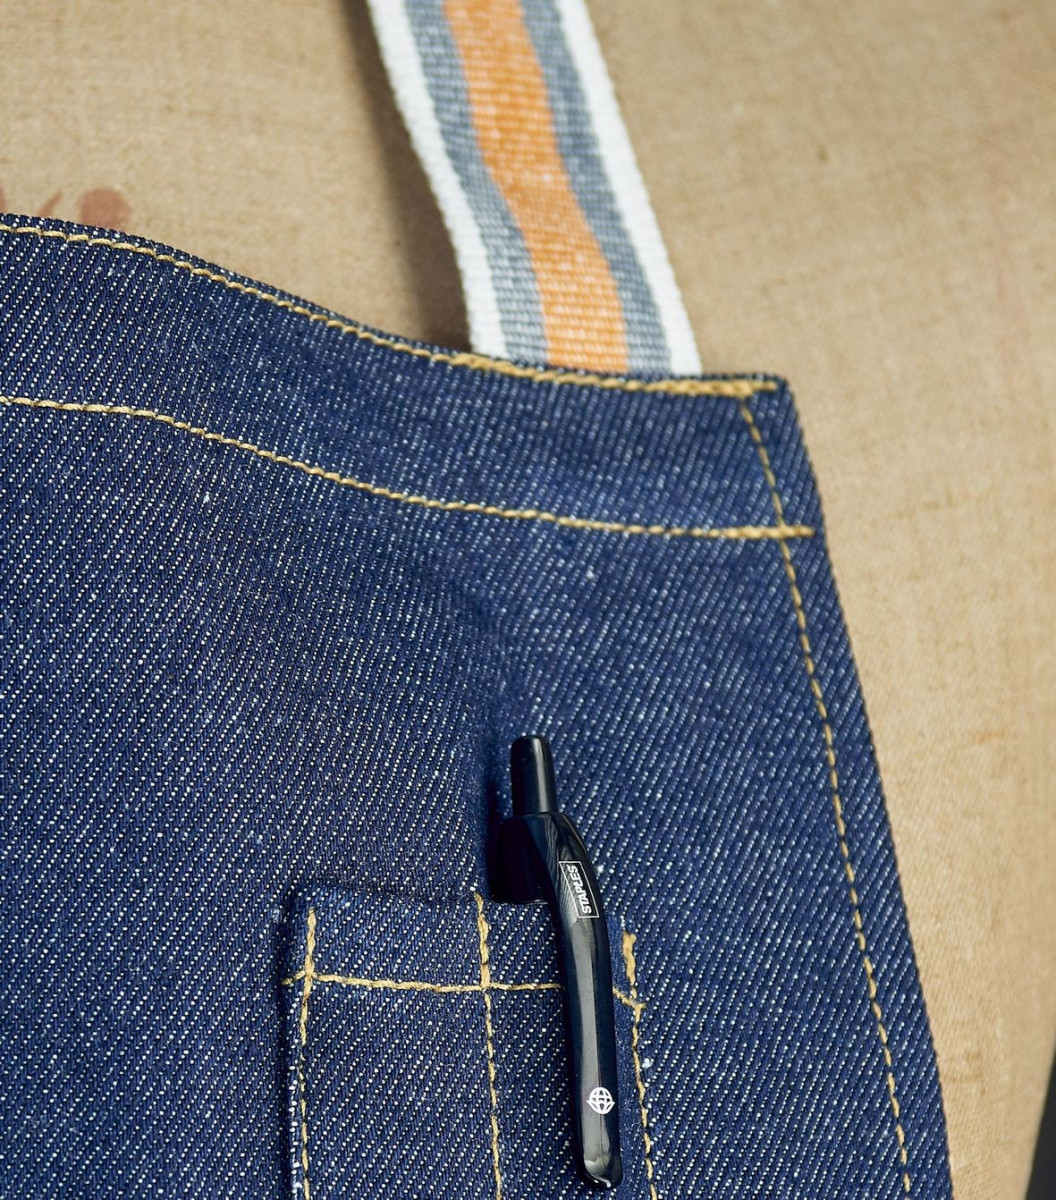 denim apron with pen pockets and stripes straps - Made in Britai